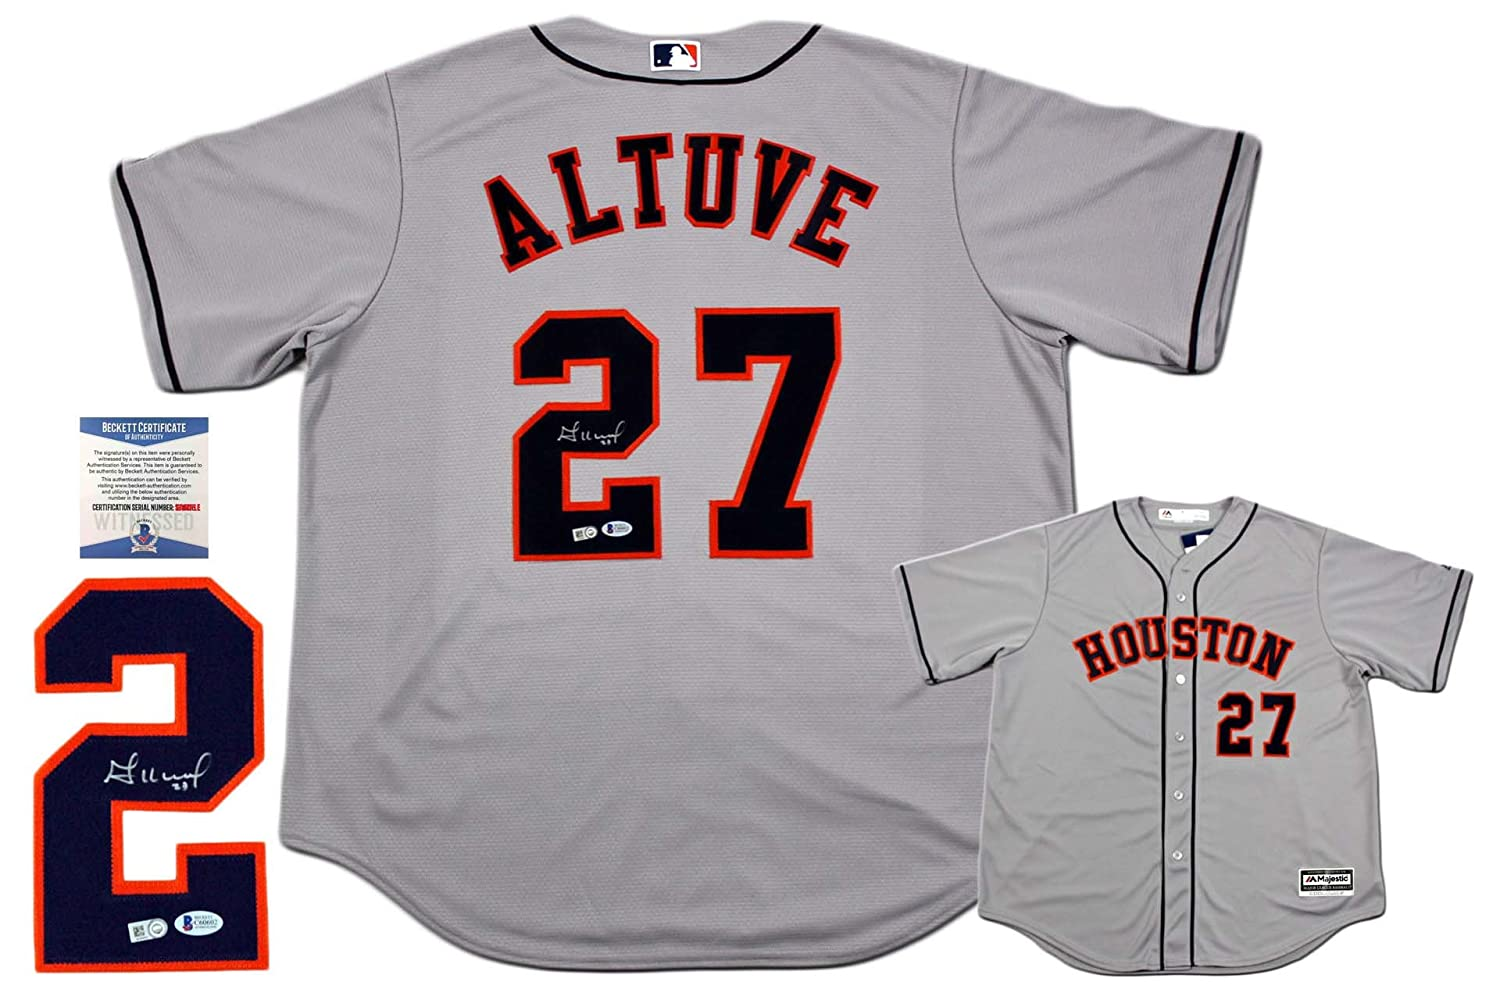 5af1ff26da2 ... 2017 world series champions cool base jersey by majestic 4deb9 0bc46   coupon code for jose altuve autographed signed majestic houston astros  jersey mlb ...